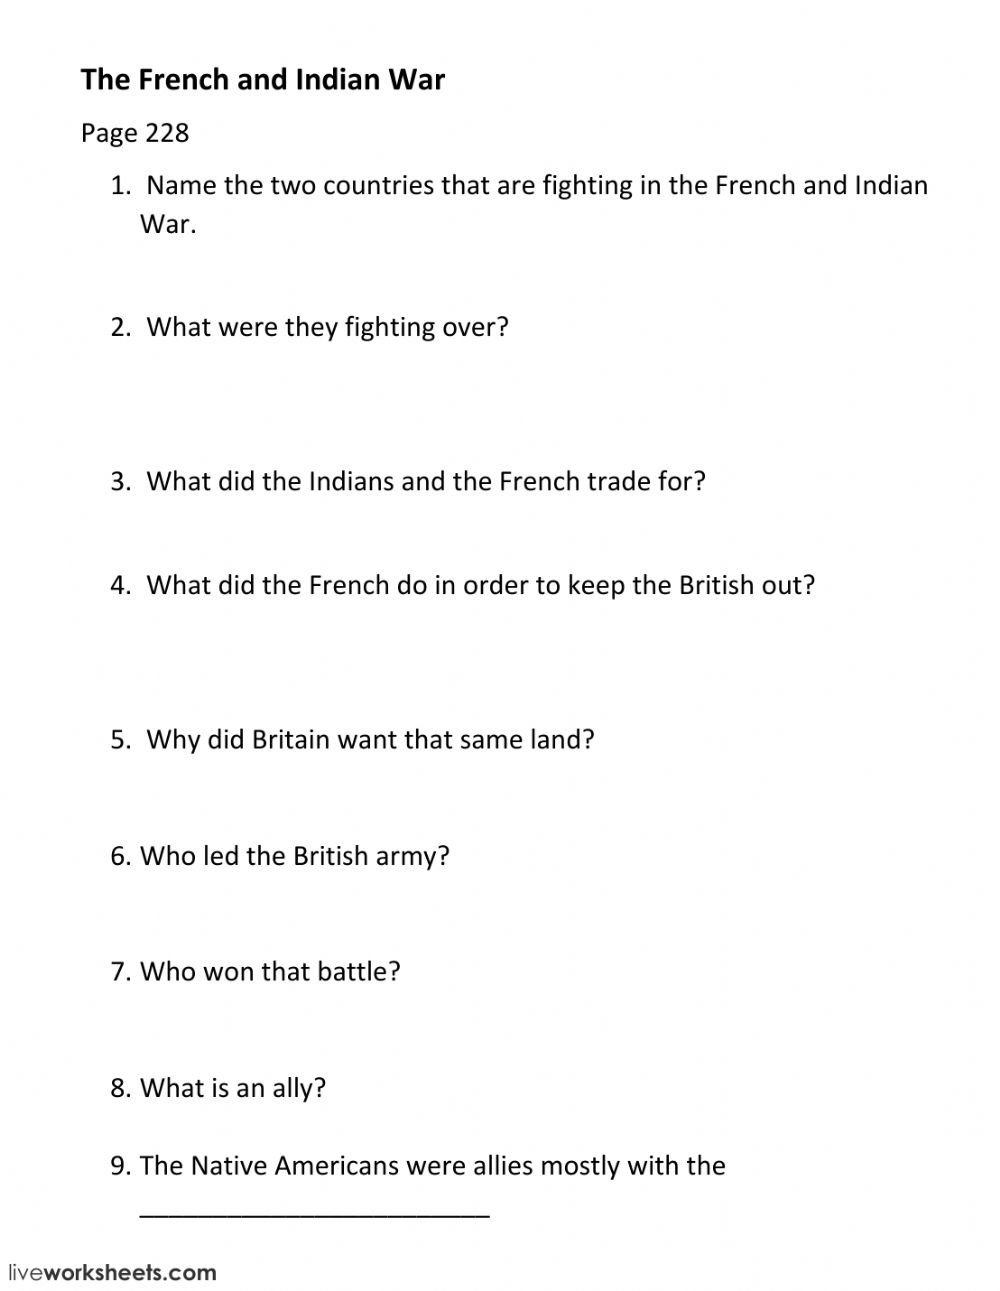 French and Indian War worksheet